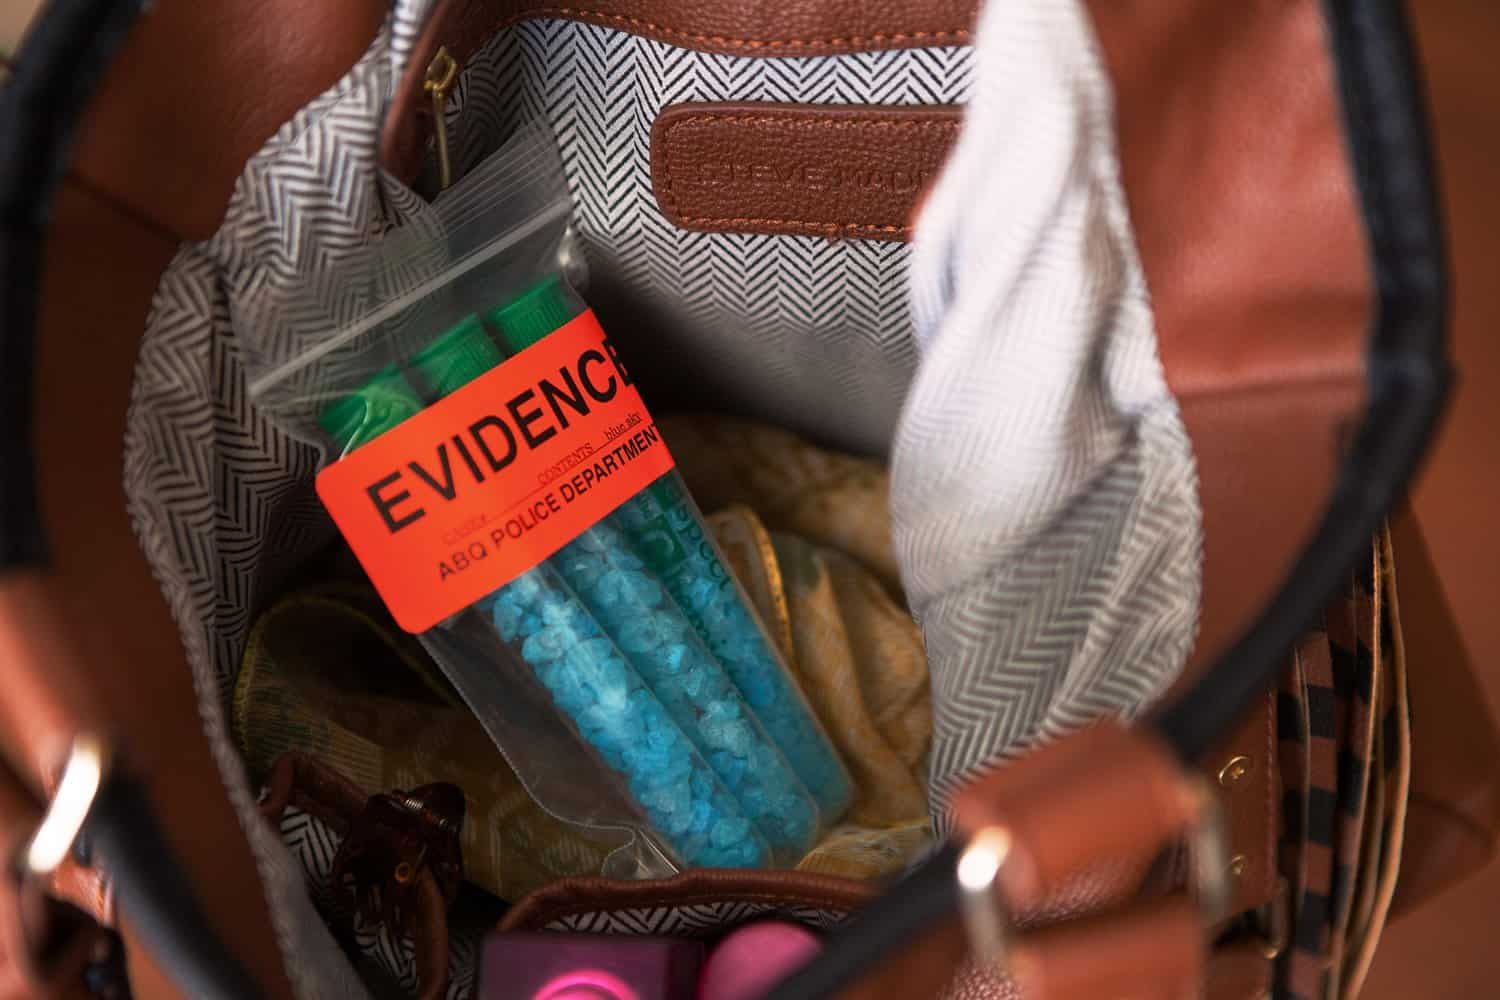 Blue Meth Candy Filled Test Tubes inspired by Breaking Bad Cool Stuff to Buy